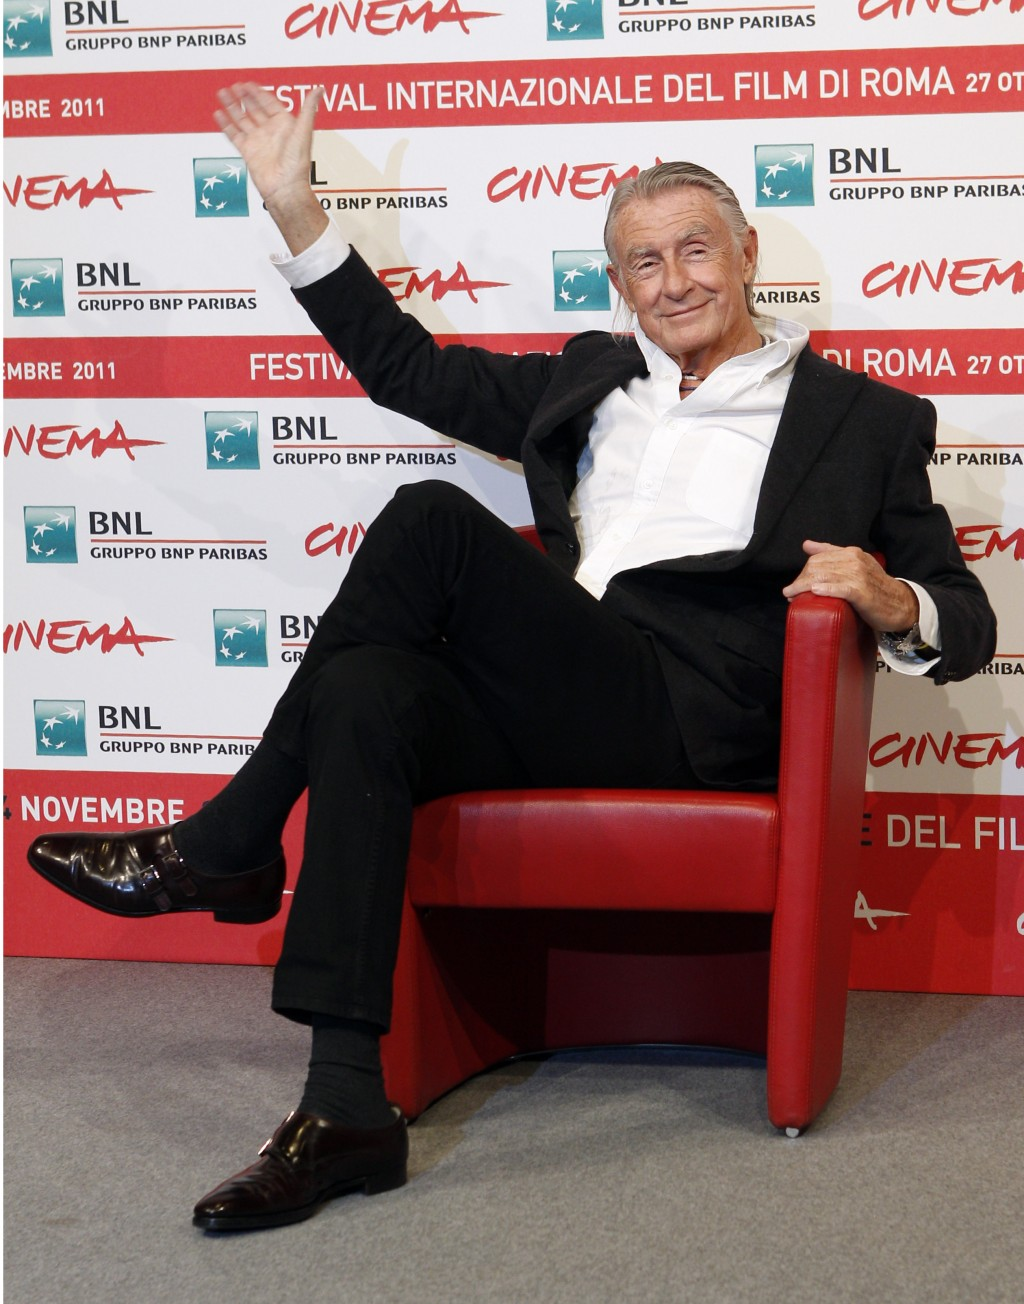 FILE - In this Nov. 3, 2011 file photo, director Joel Schumacher waves during a photo call for Cinema and Advertising: Joel Schumacher directs Campari...